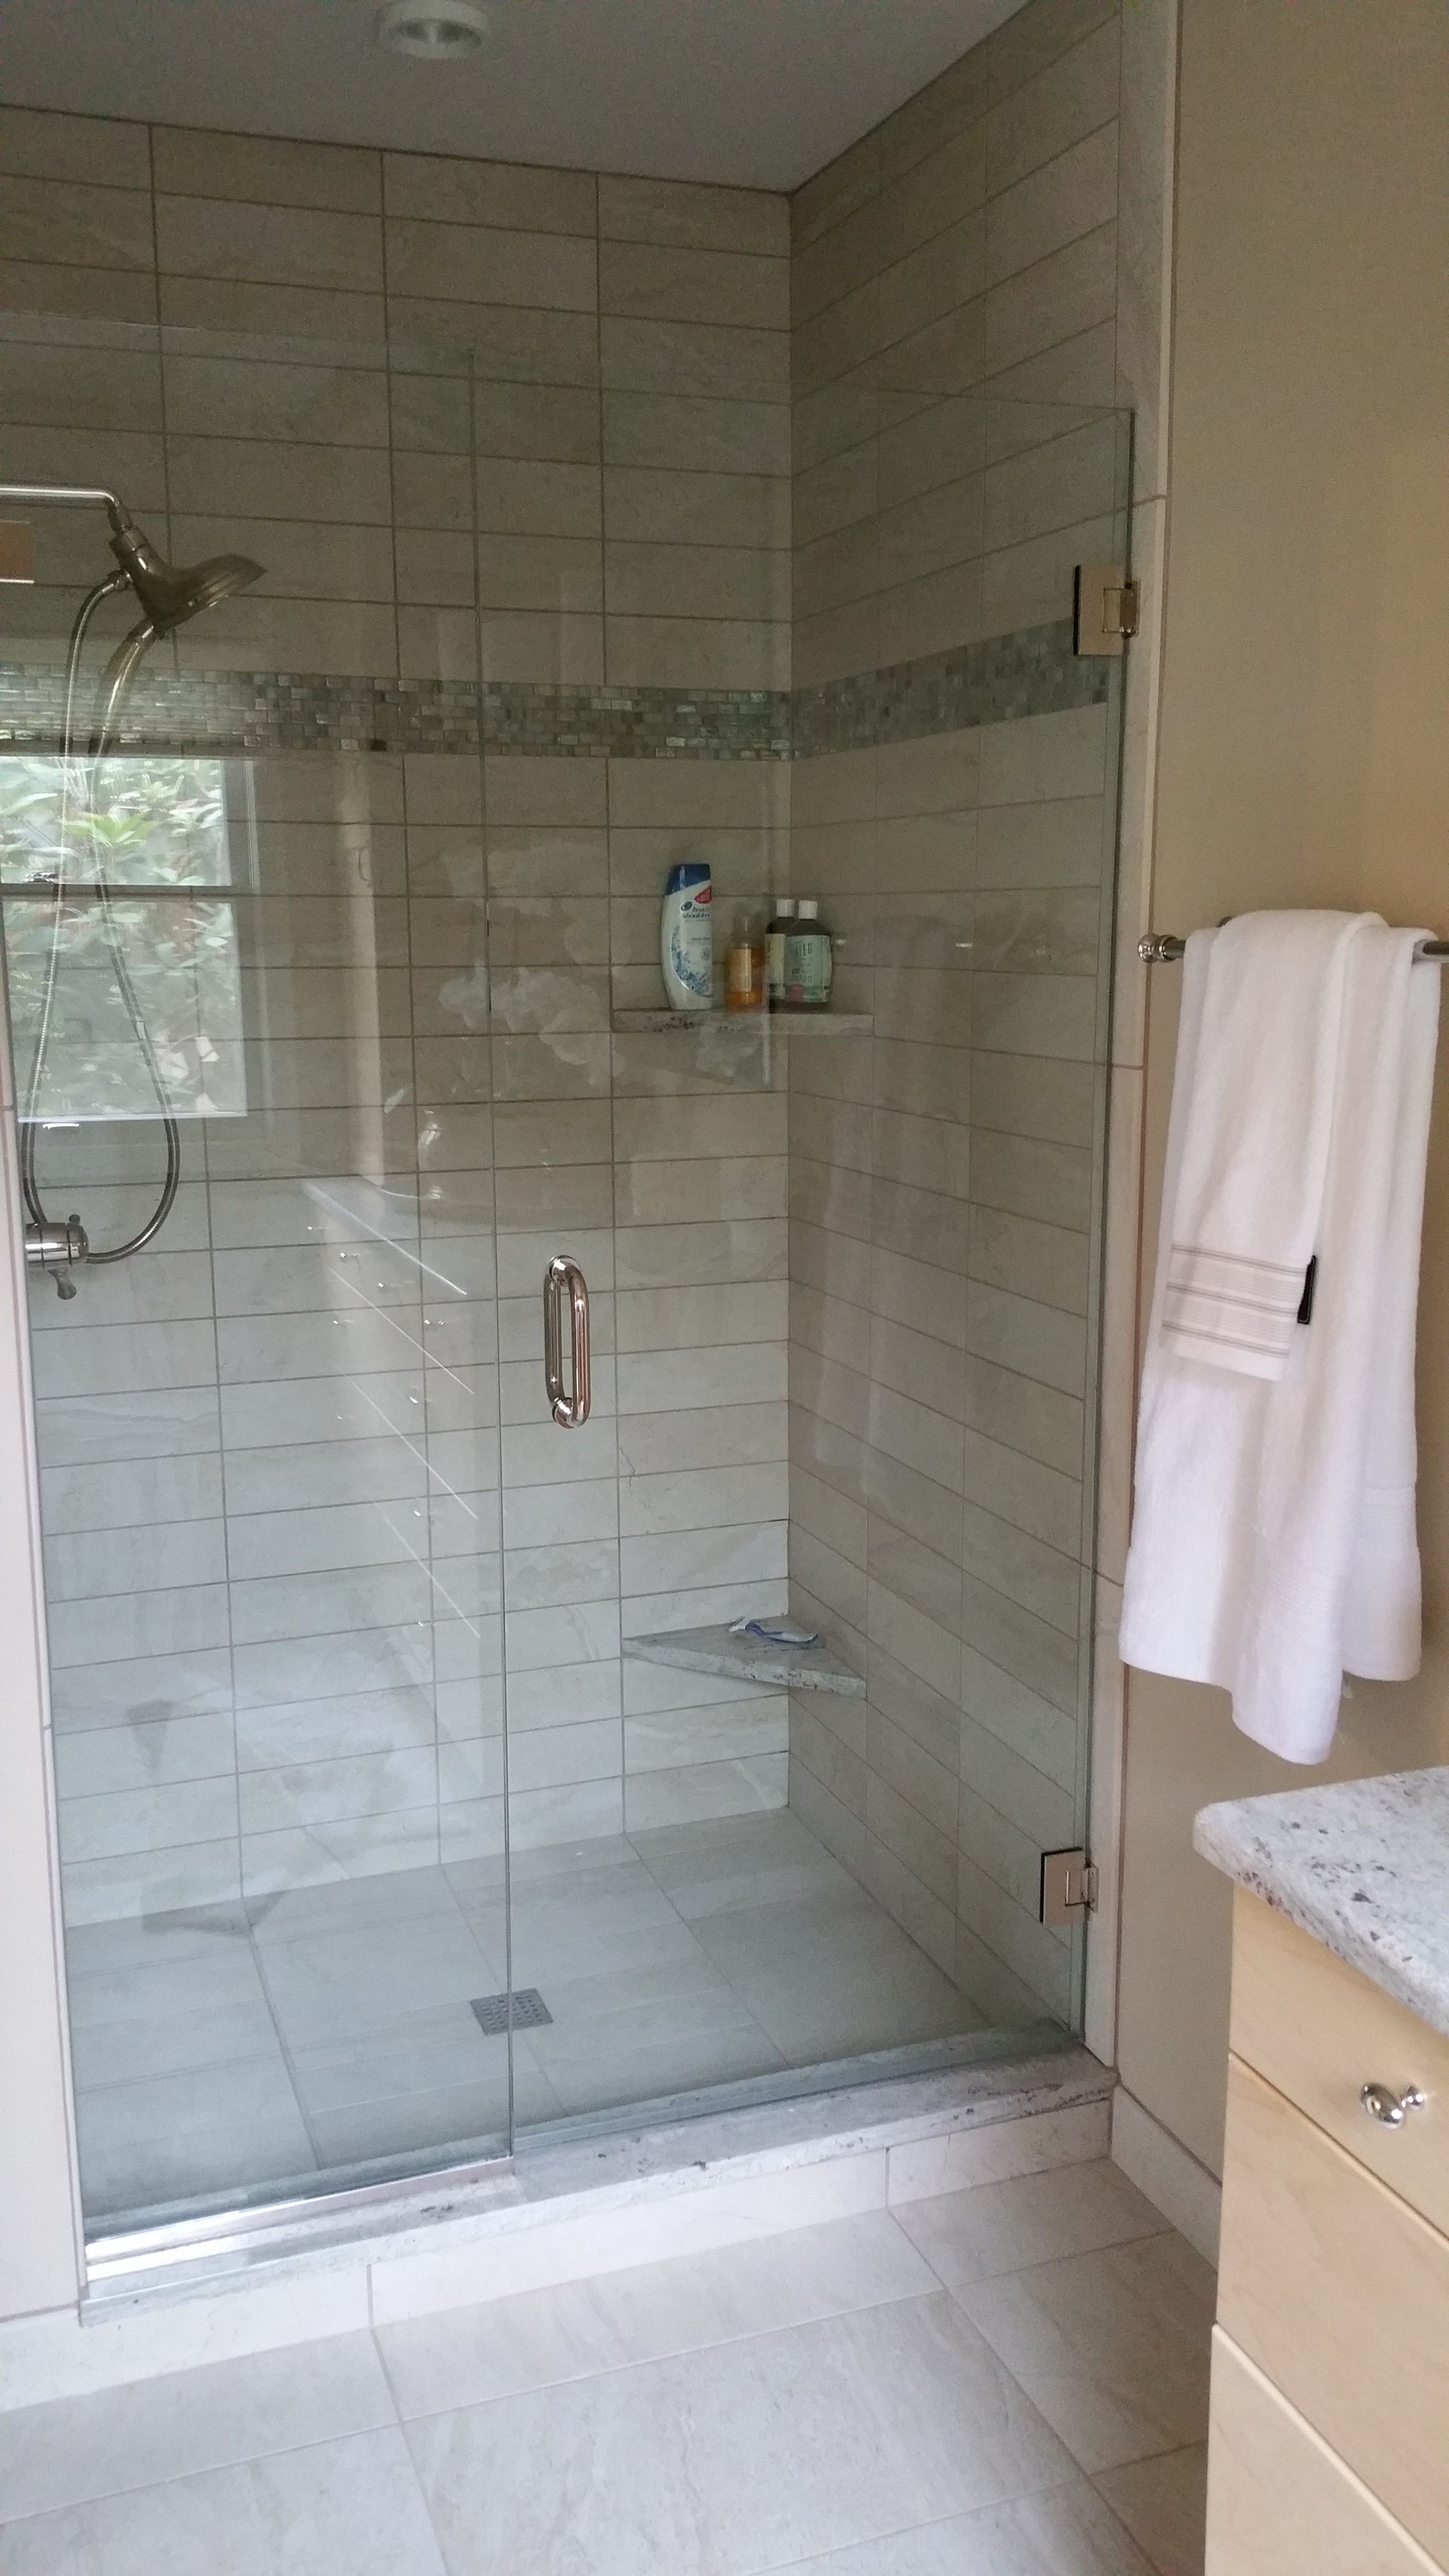 This Is A Good Example Of Using Counter Top Material In The Shower